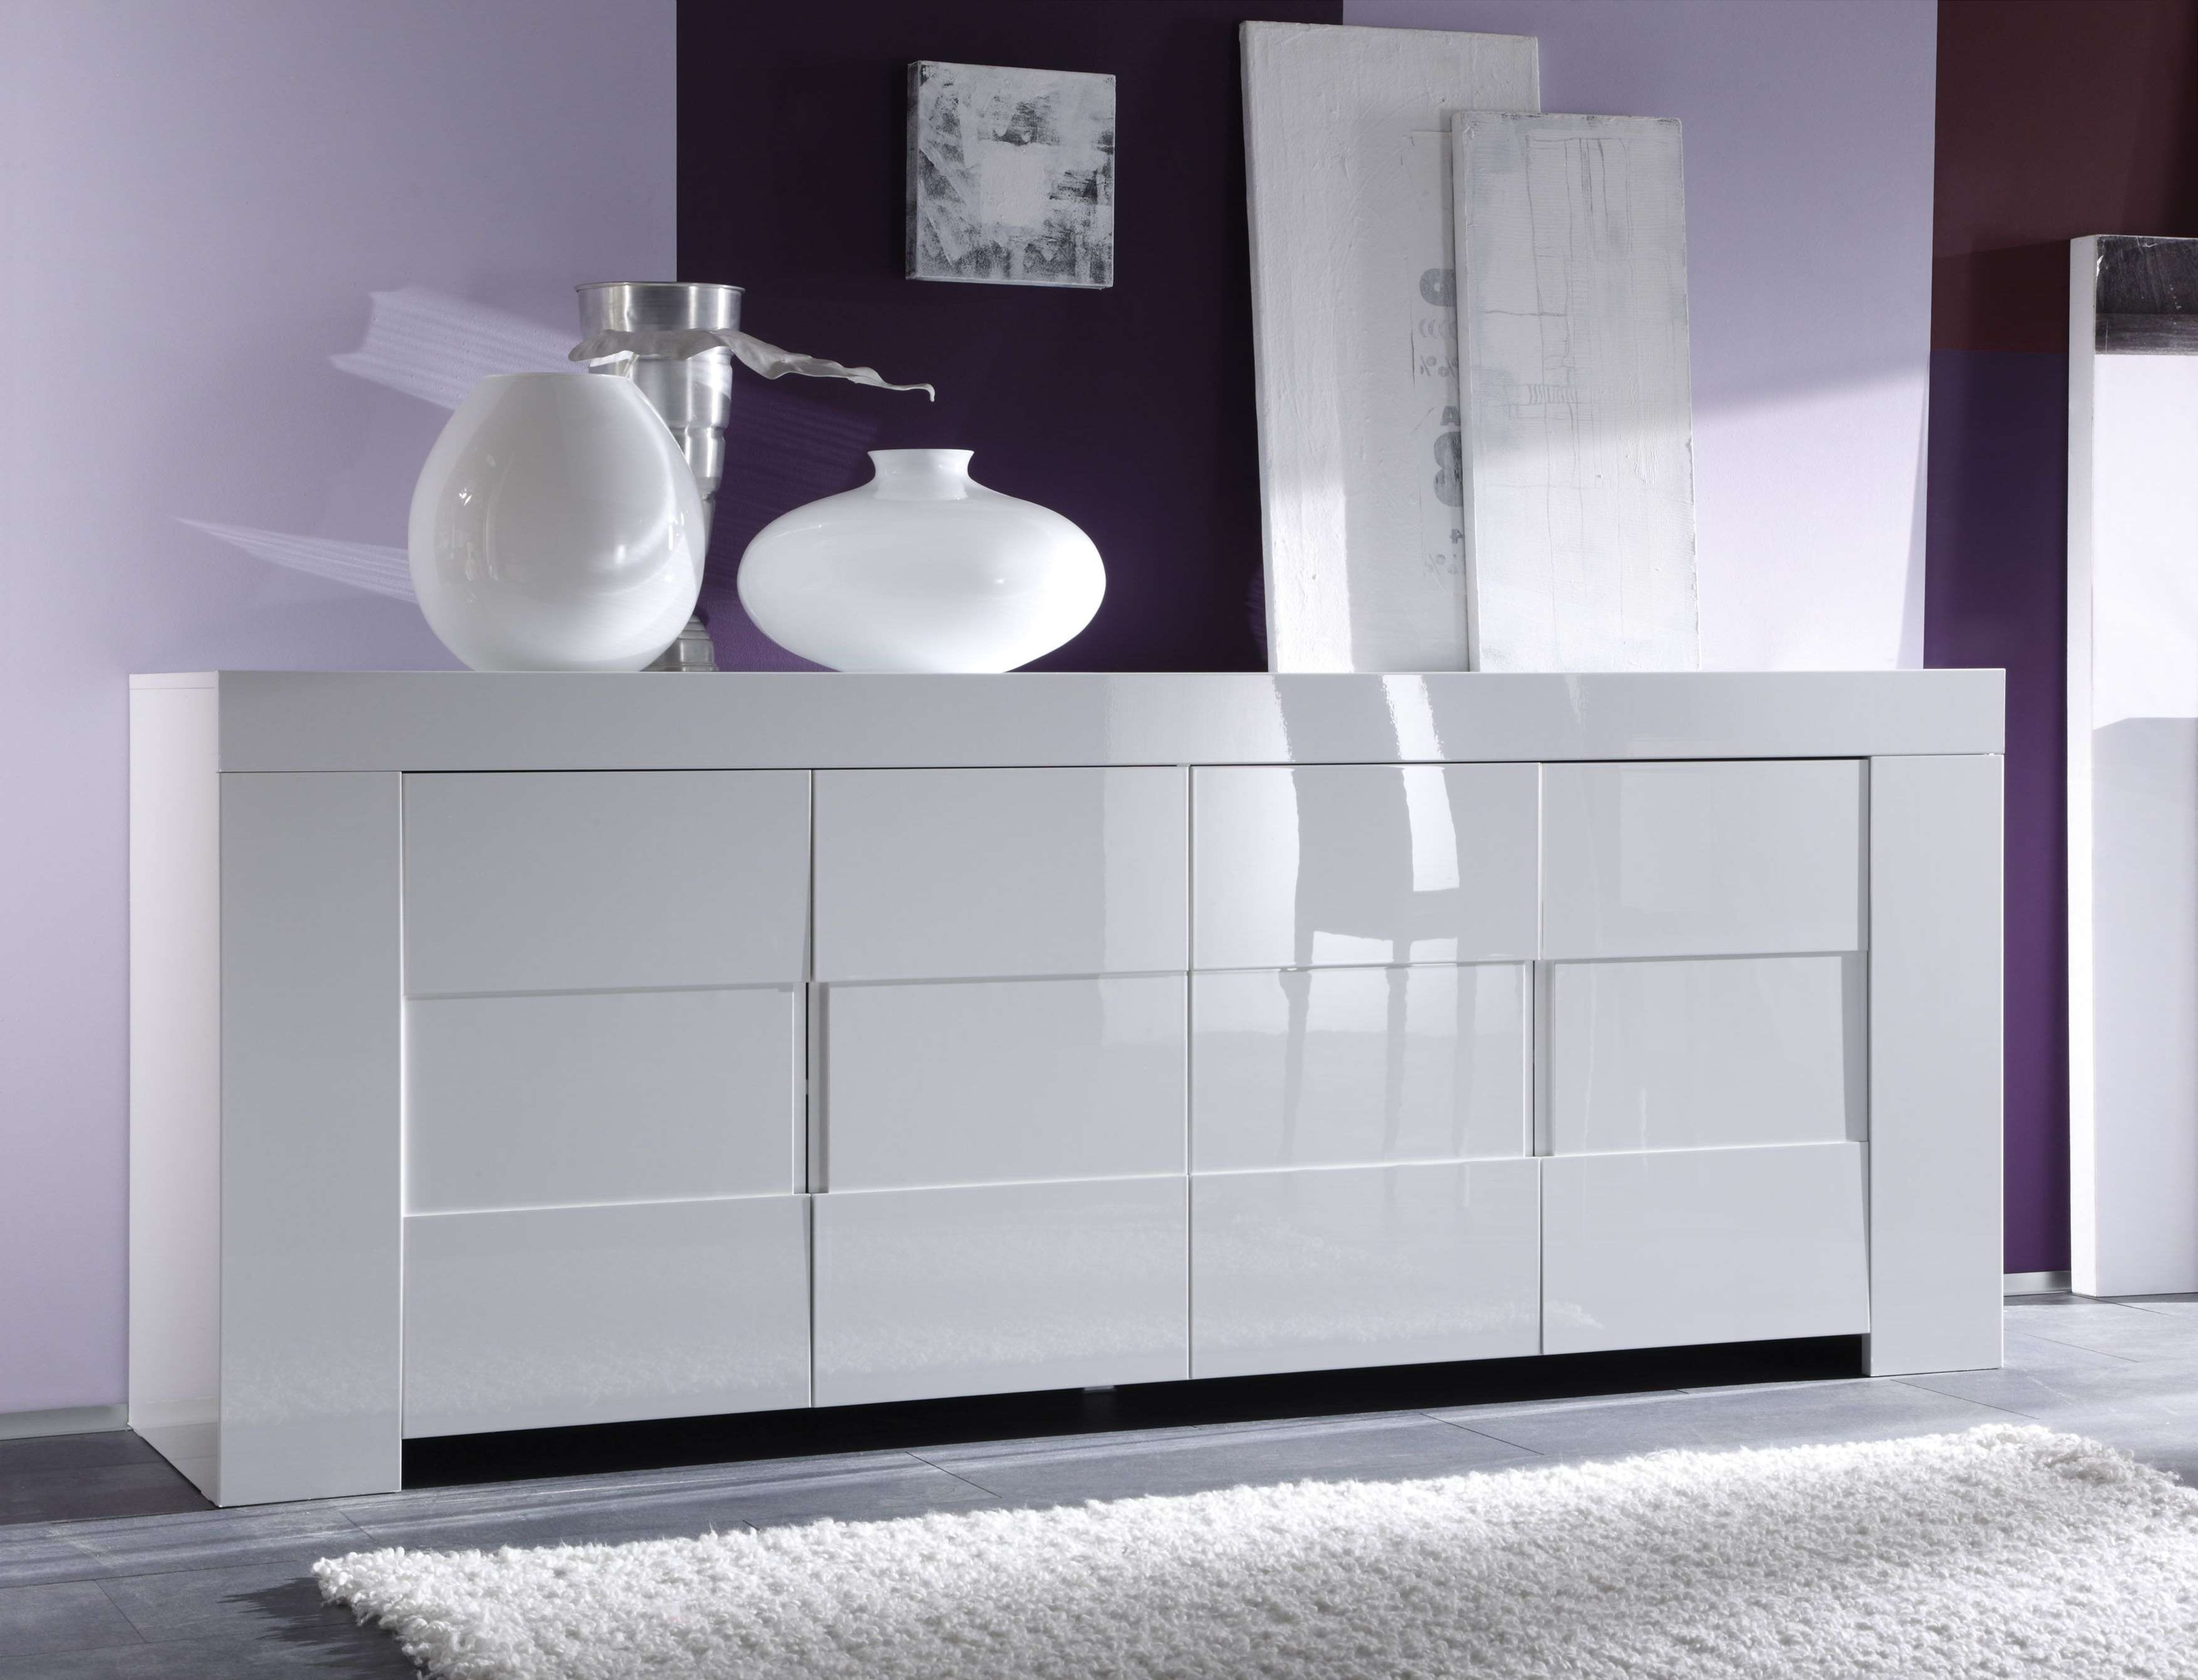 Italian Four Door High Gloss White Or Oak Veneer Buffet Sidaboard Intended For High White Gloss Sideboards (View 10 of 20)